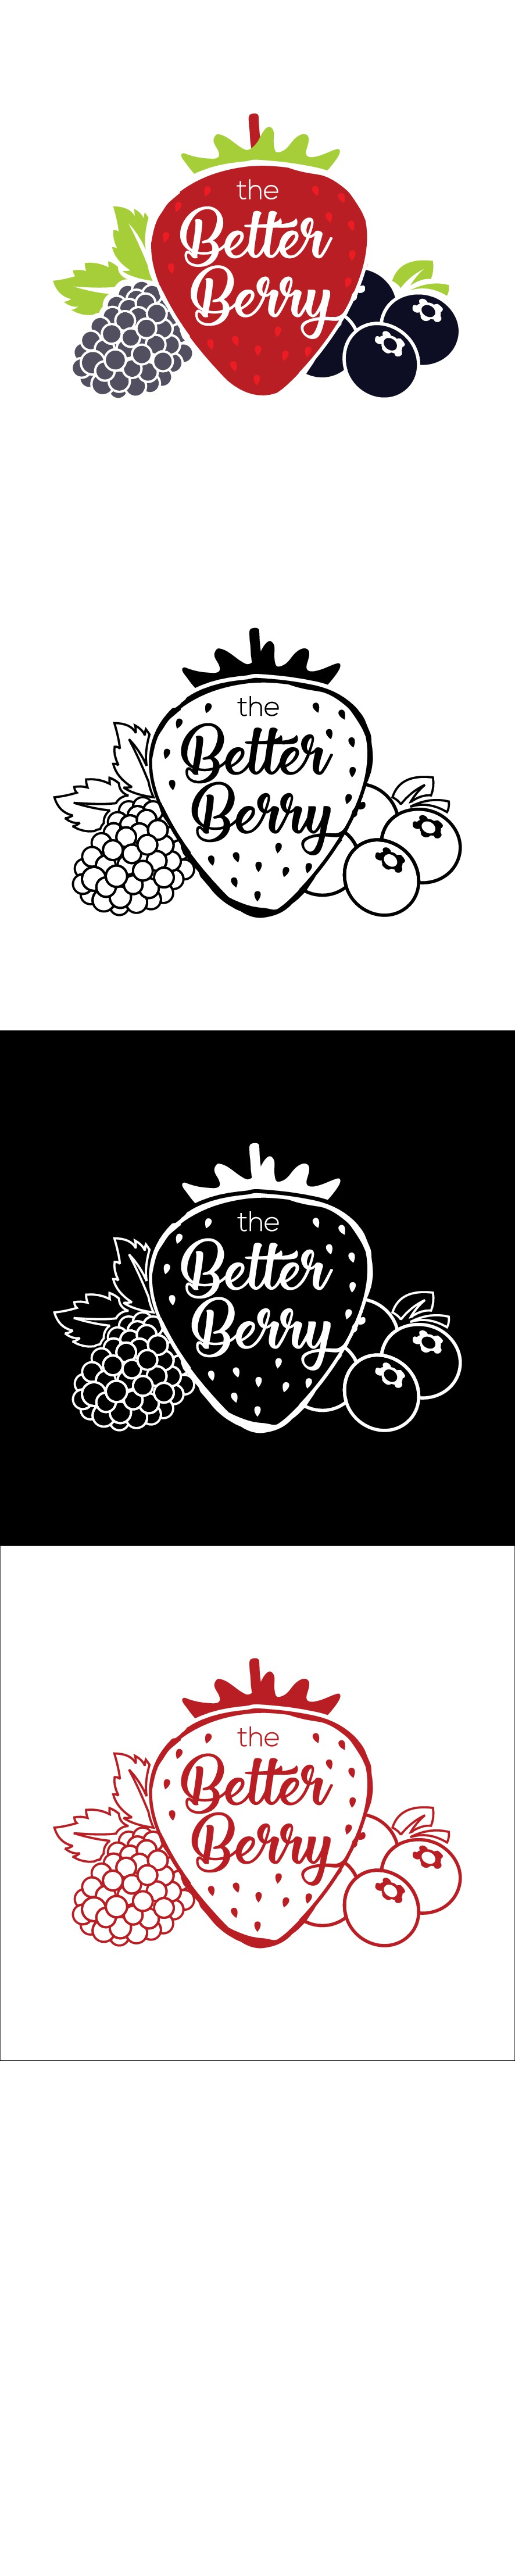 The Better Berry needs your creative juice!